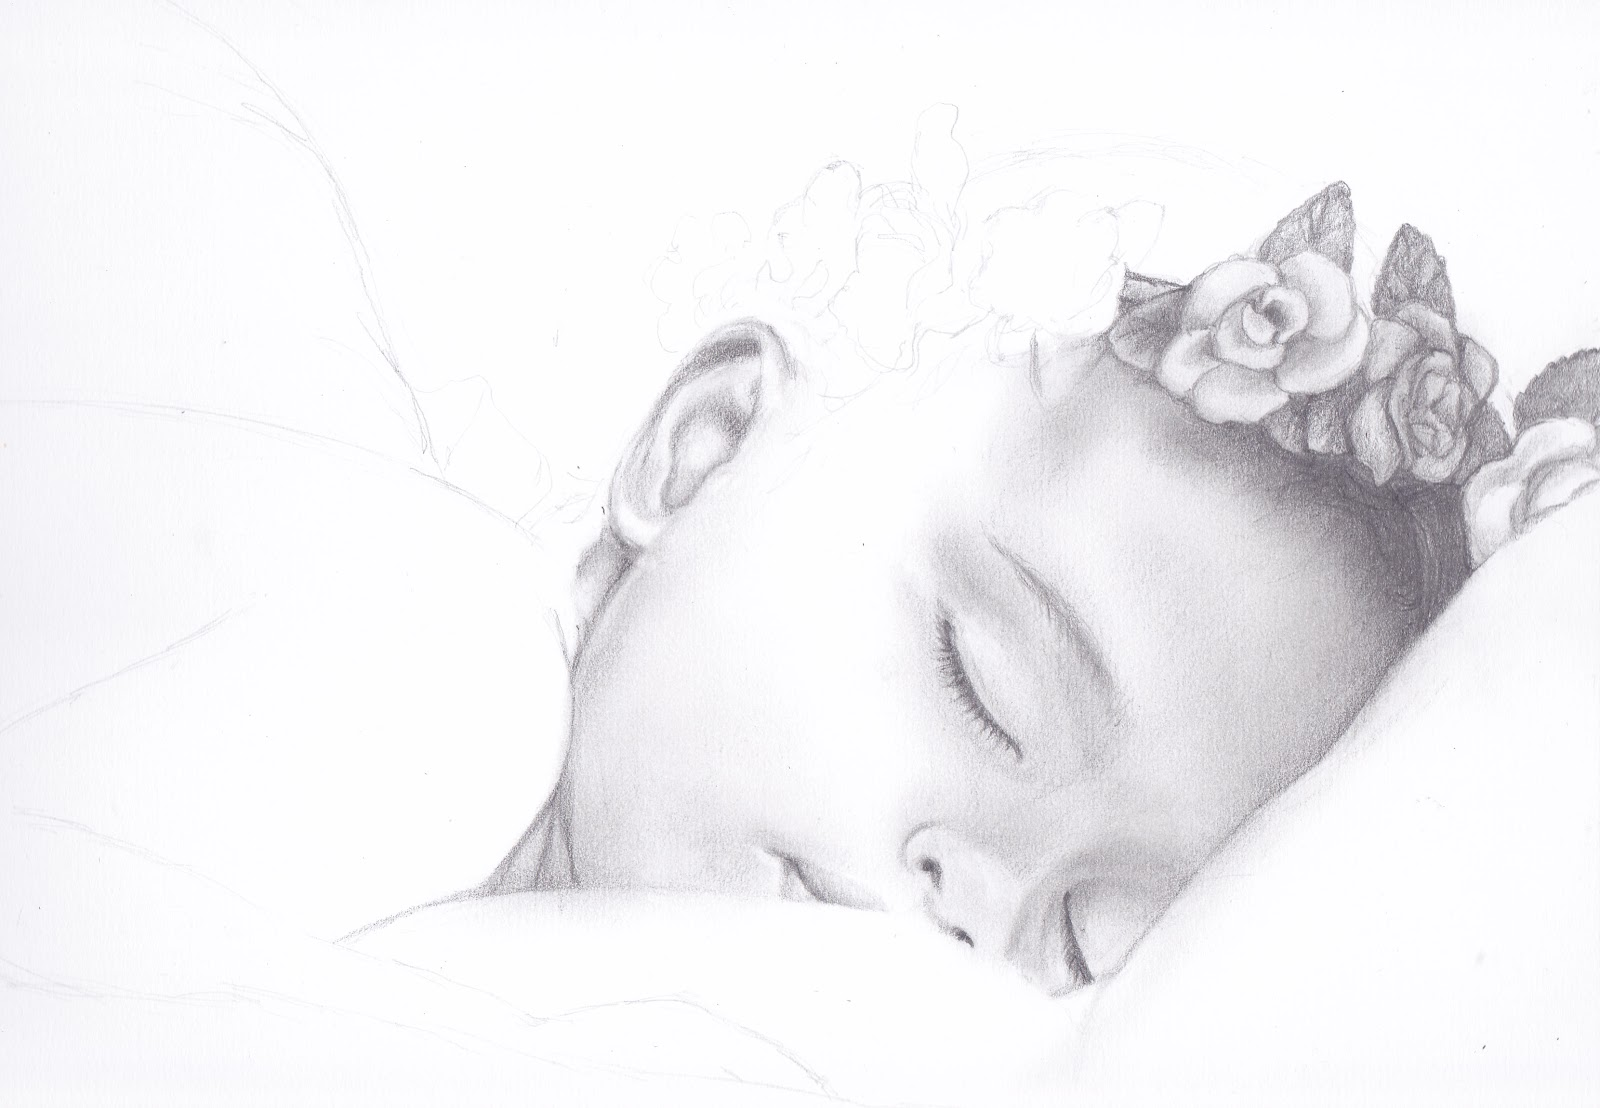 Pencil drawings of baby angels stage 2 sleeping angel pencil drawings of baby angels